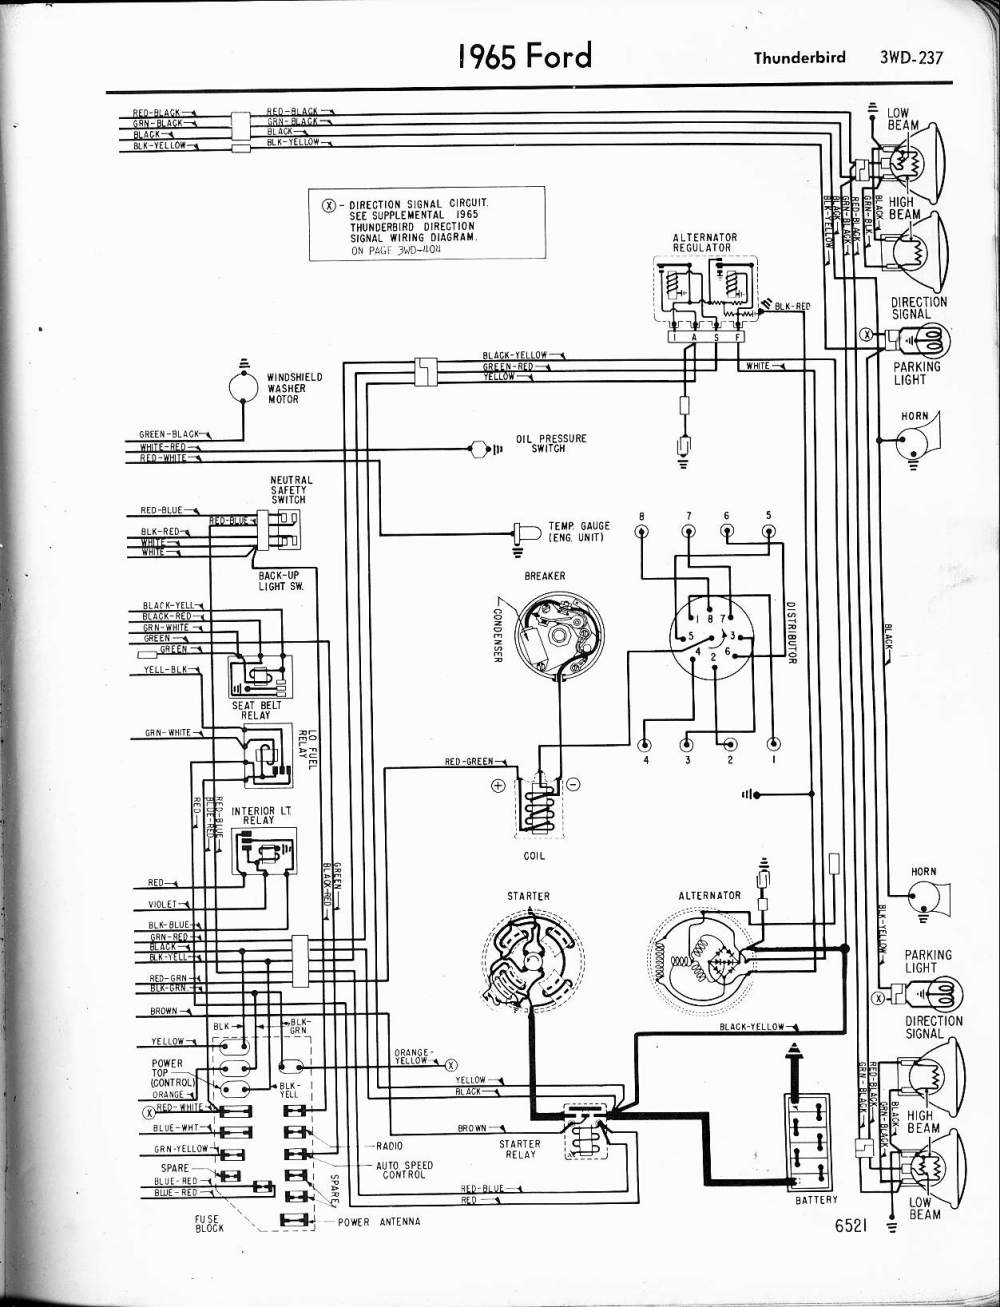 medium resolution of 1956 ford wiring diagram simple wiring diagram 1970 torino gt 1970 fairlane wiring diagram